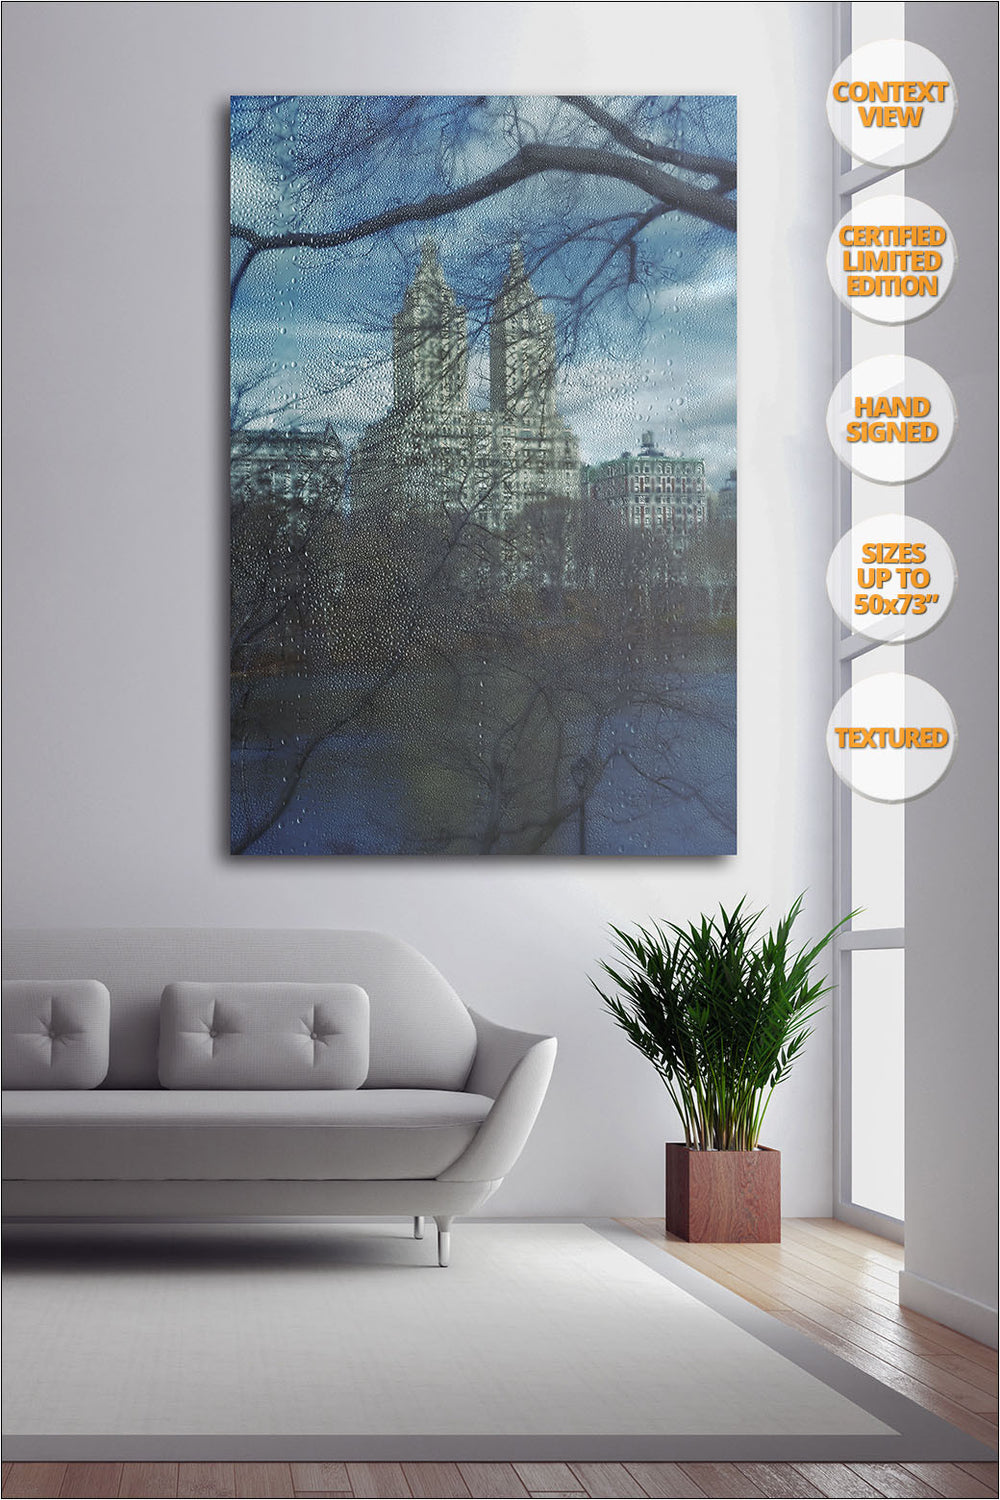 The San Remo from Central Park in Winter, New York. | Limited Edition Print hanged in living room.